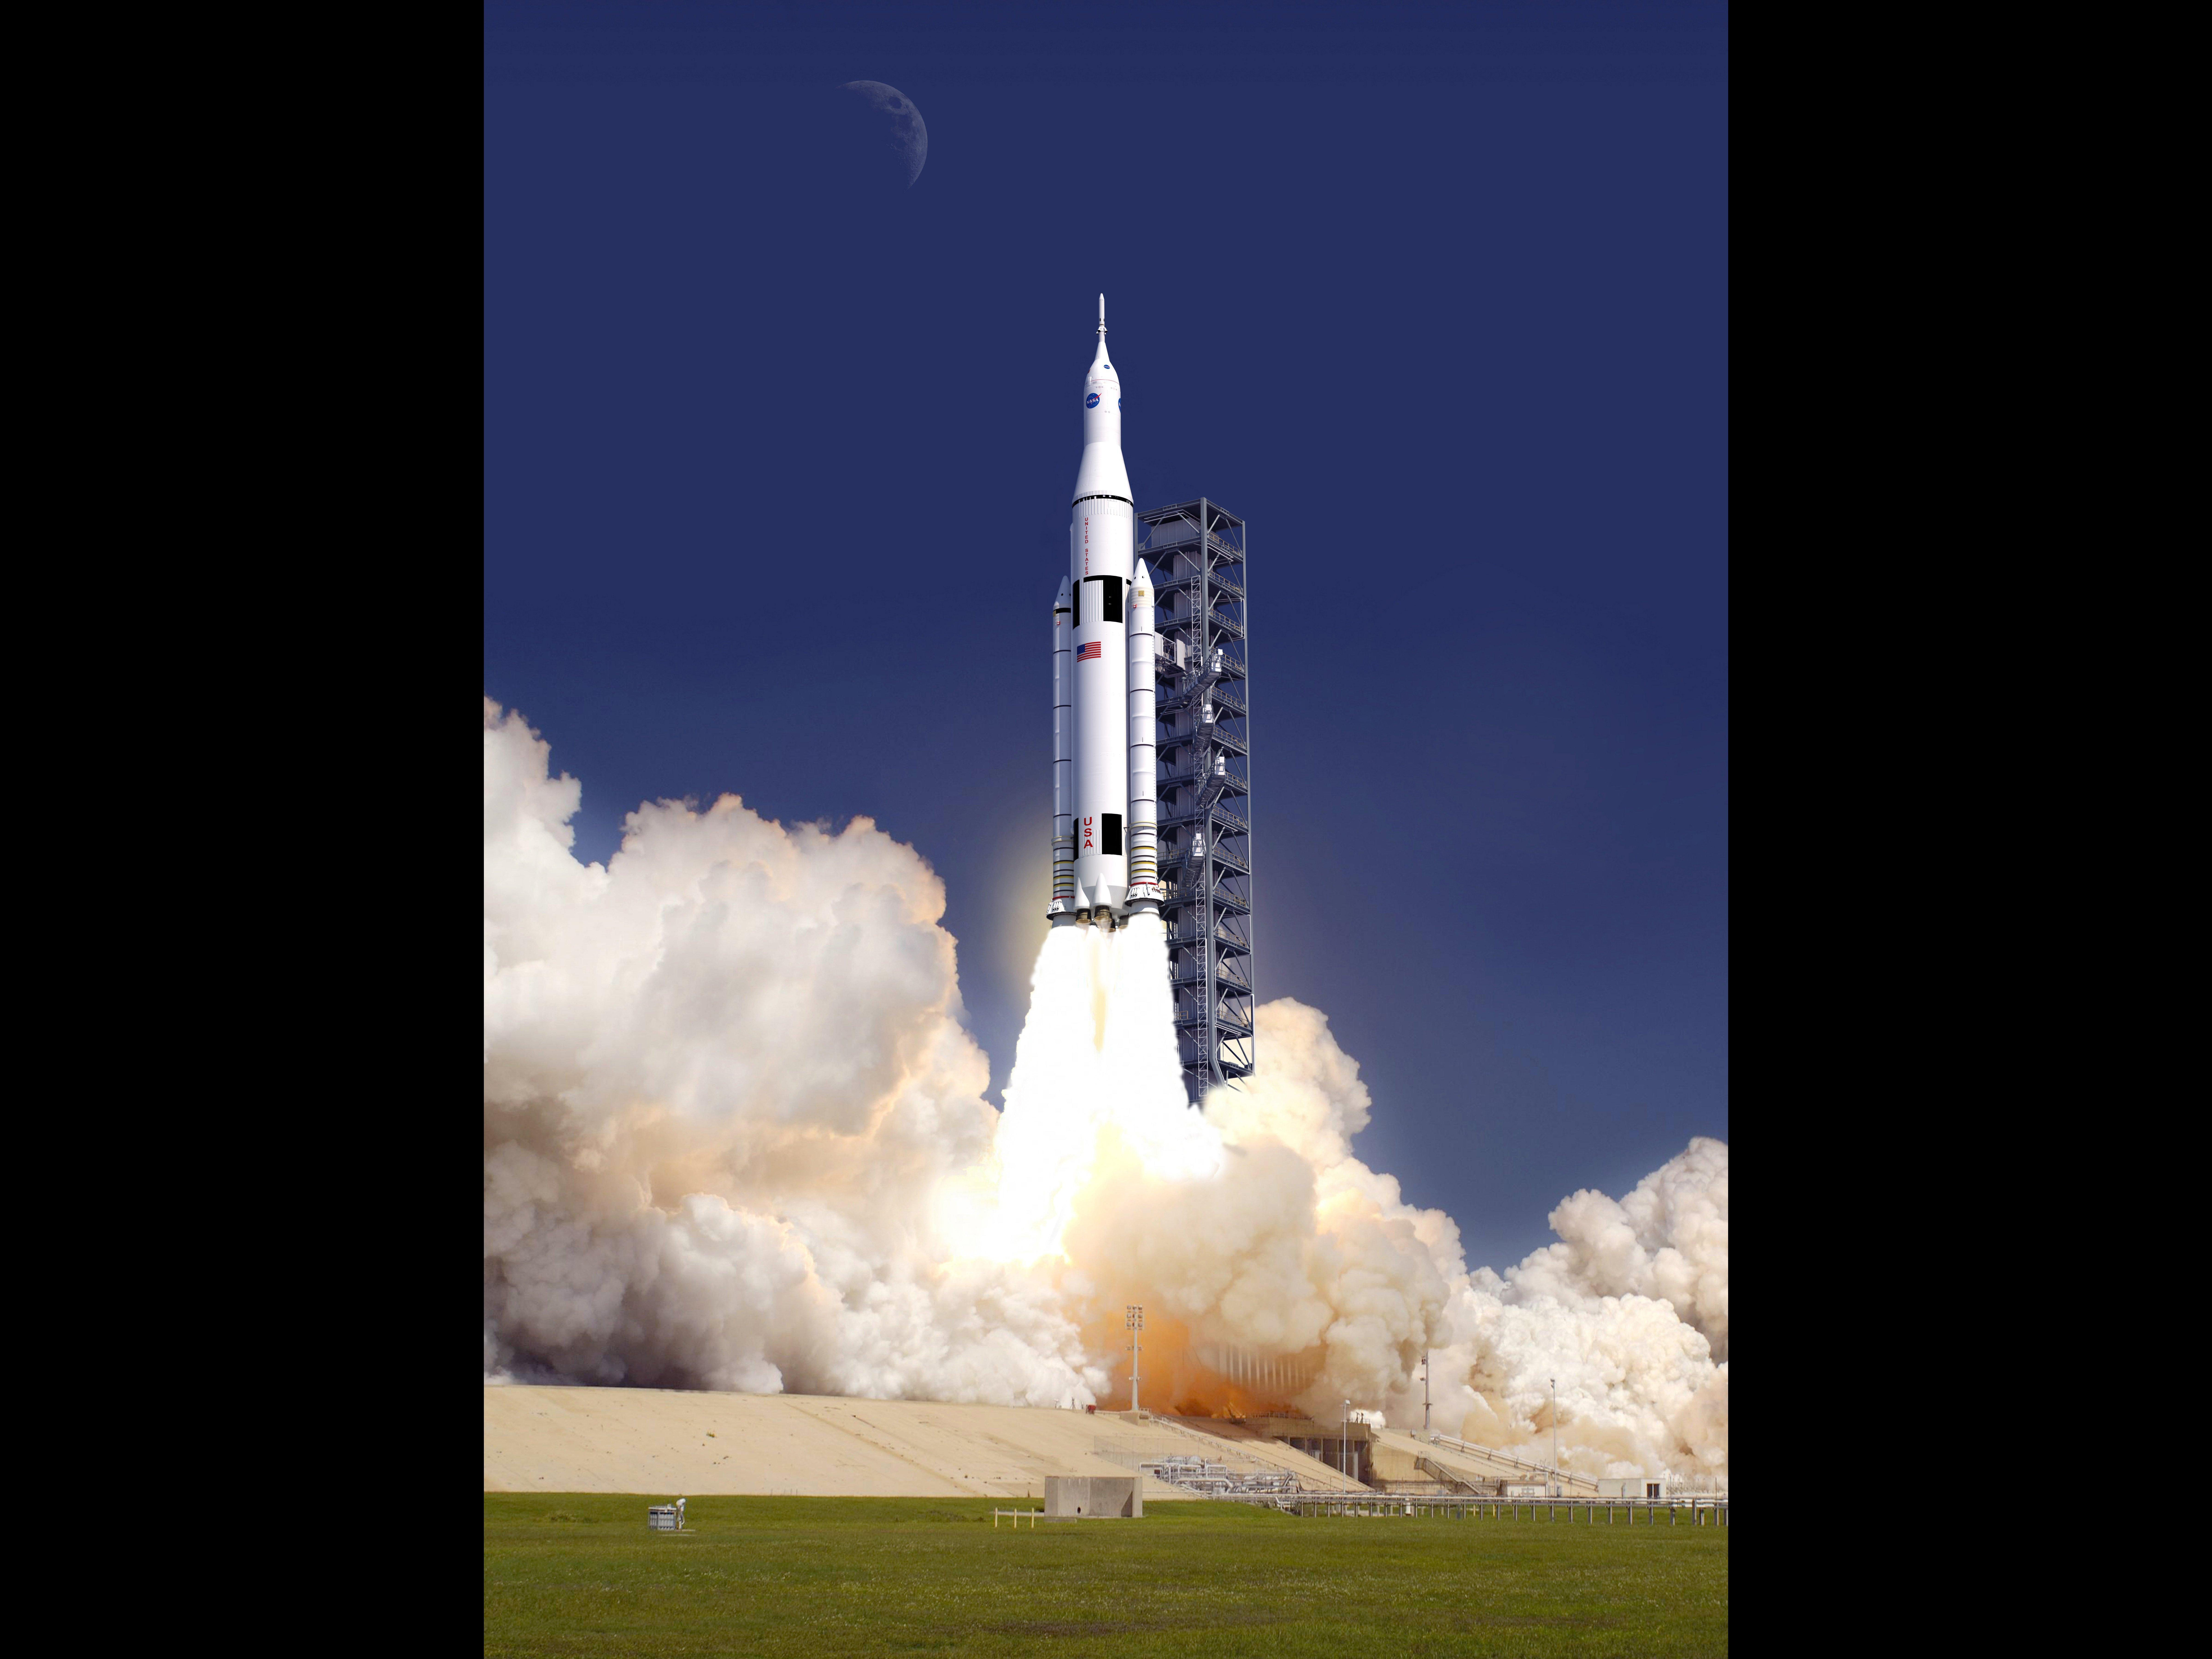 discourse analysis of nasa's space launch Where we are now is that our analysis shows we can exceed the nasa requirements for all three of those criteria, he said  while the first and second stages of the falcon 9 that will.